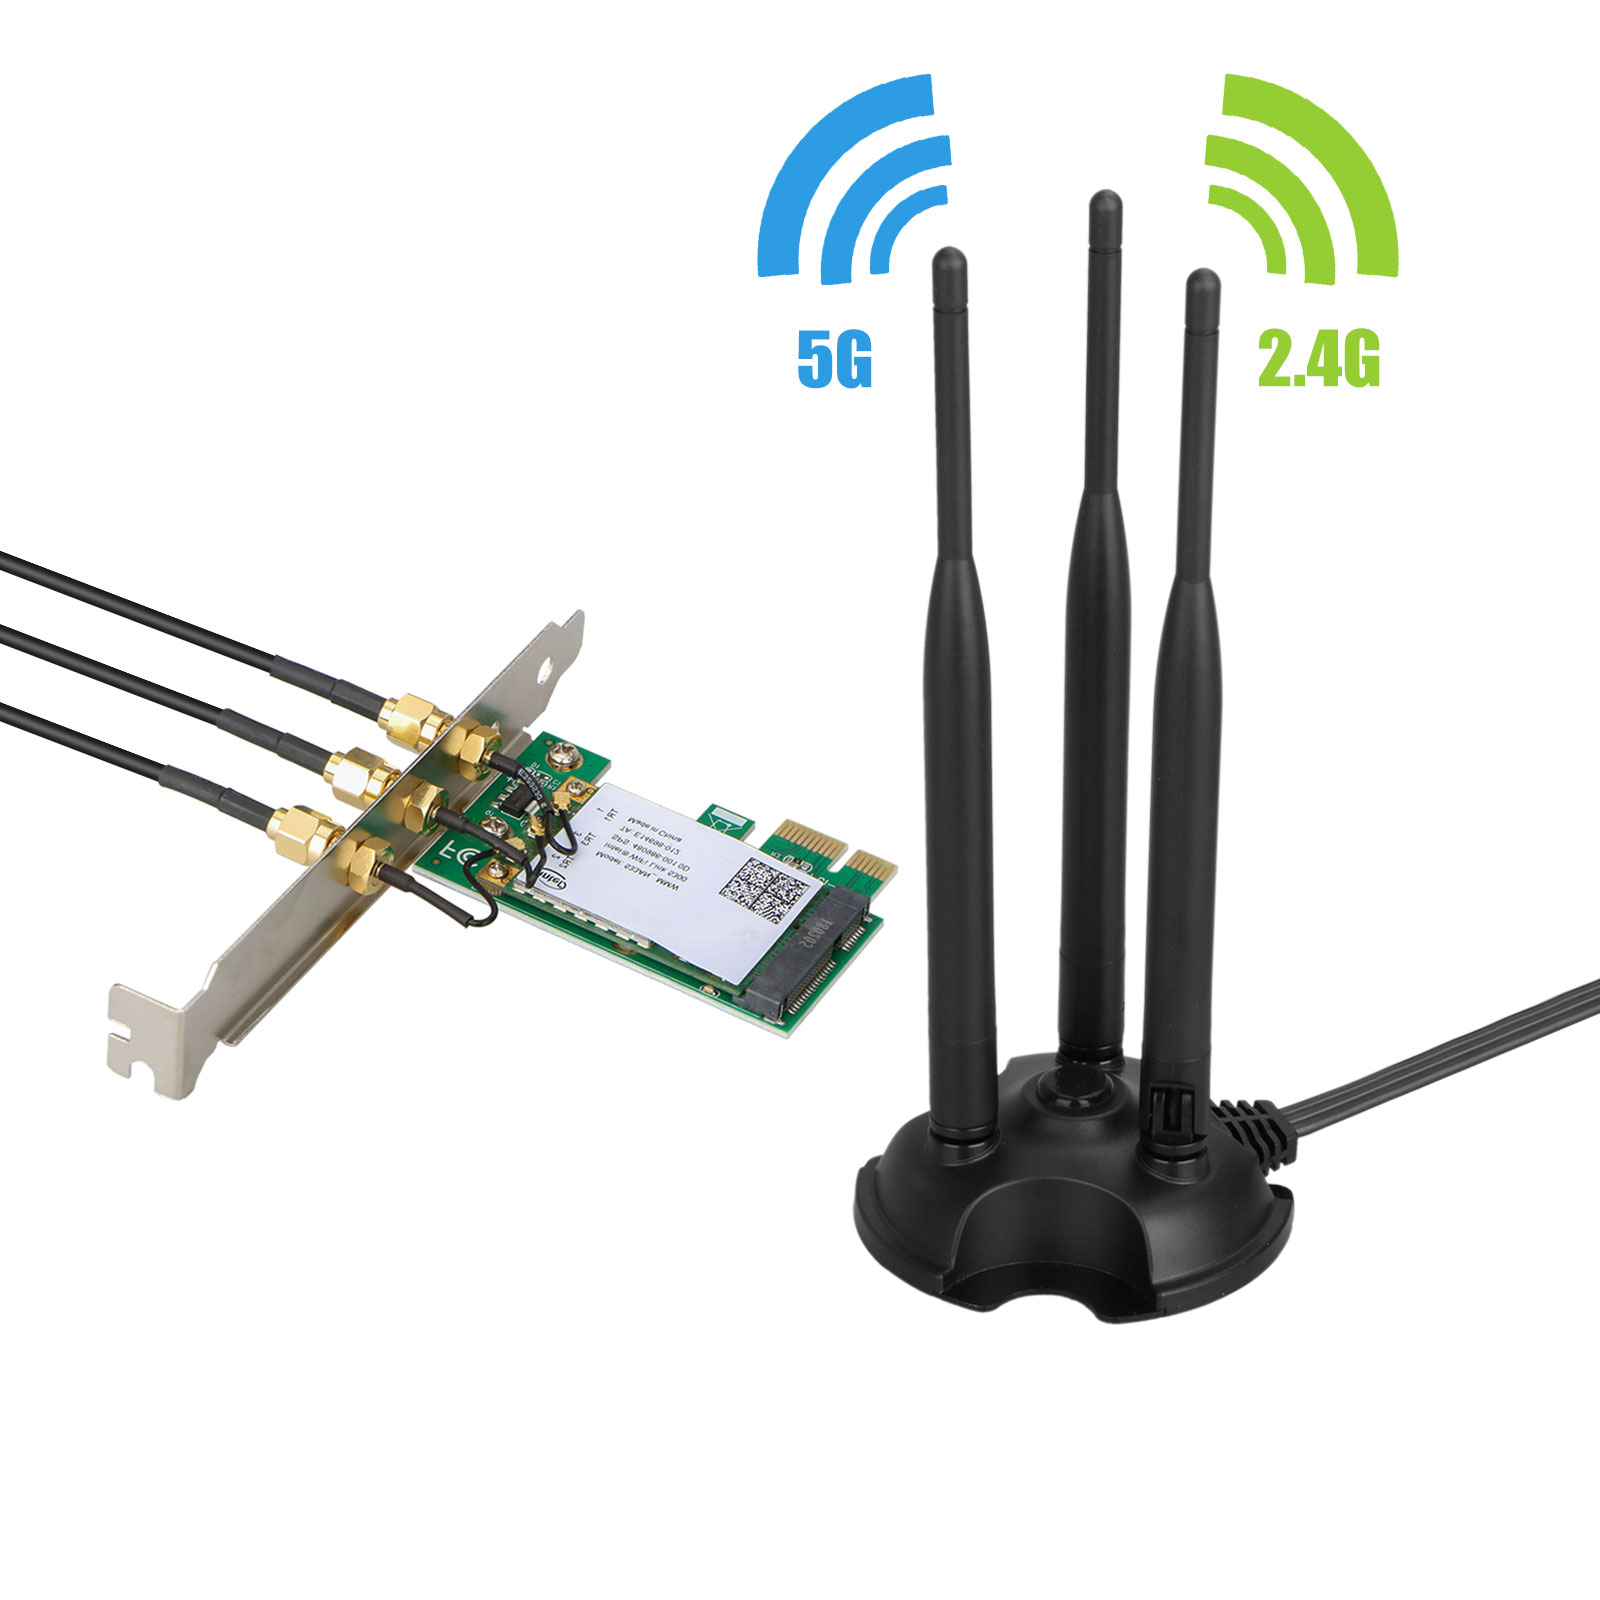 WiFi Adapter/Wireless Adapter/Network Card, 450Mbps PCI-E WiFi Wireless Card Adapter Antennas for Desktop Laptop PC, Support Windows XP/Win7/Win8/Win8.1/Win10 System